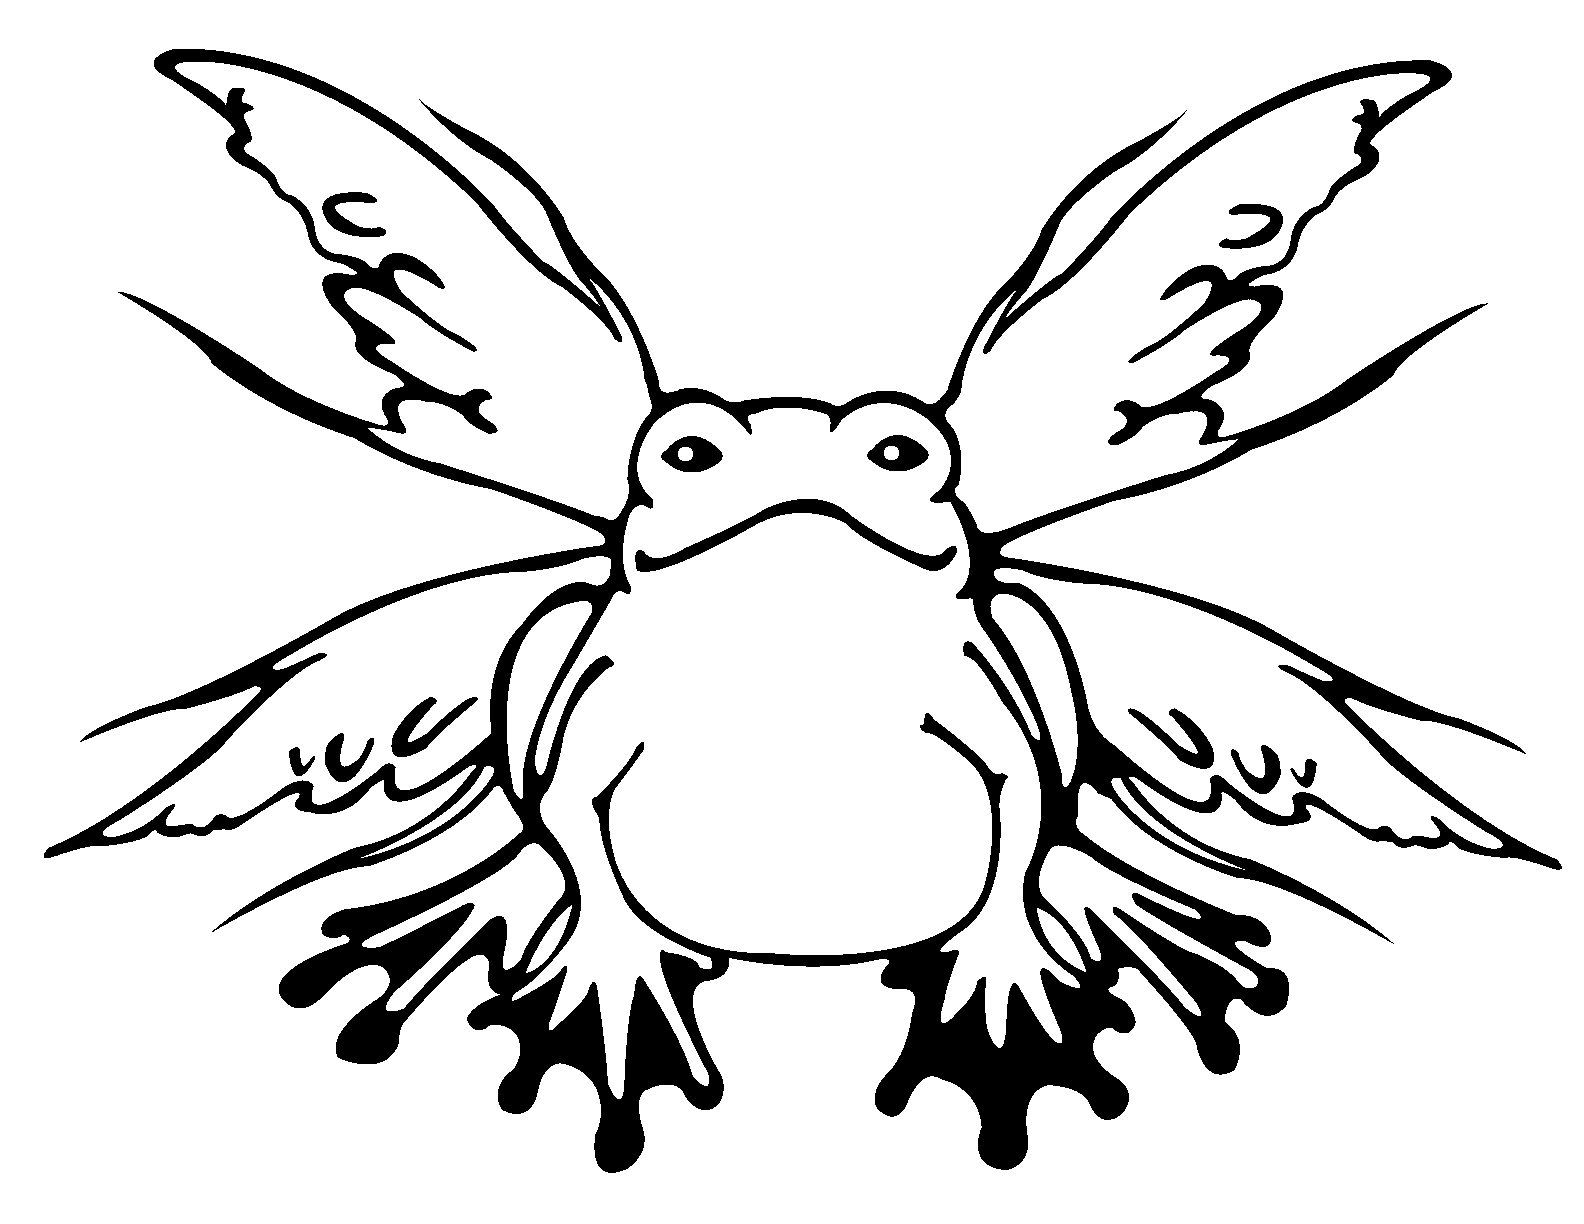 Frog Butterfly Decal